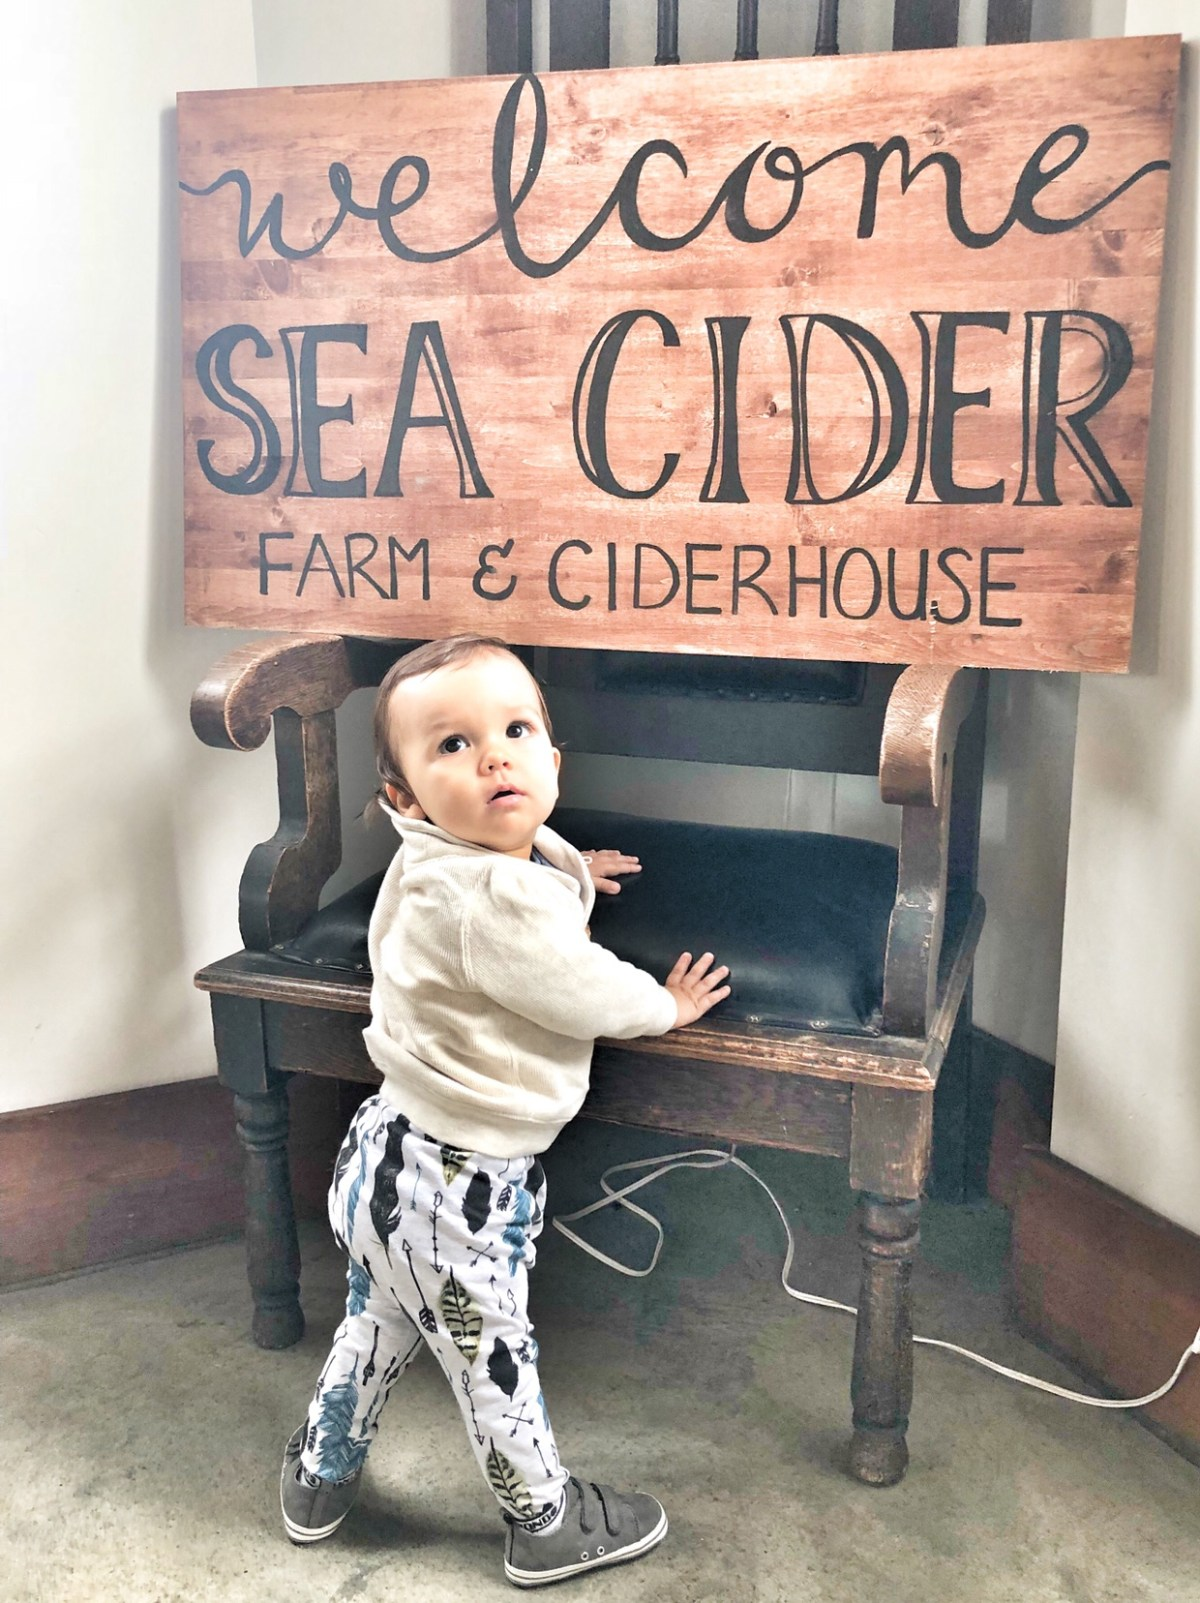 sea cider farm and ciderhouse